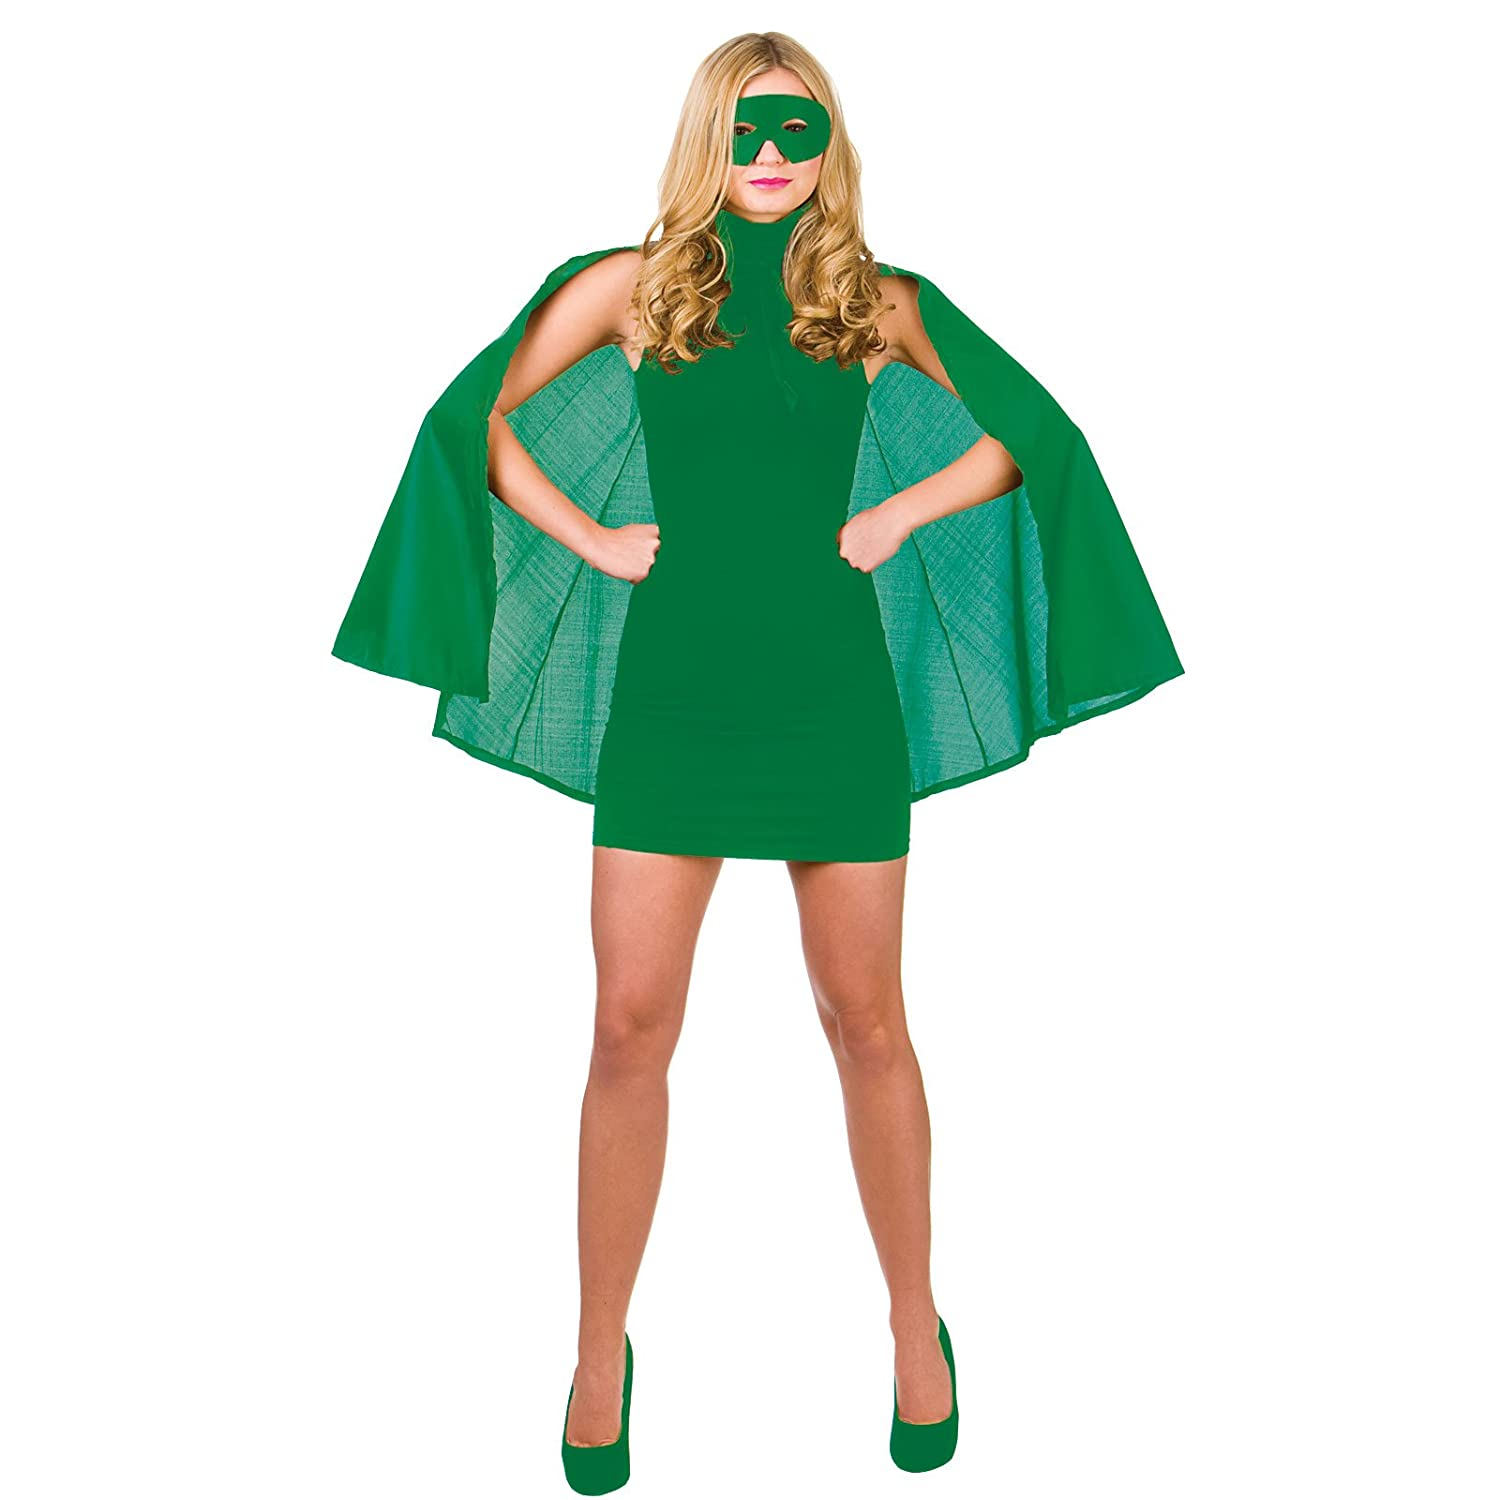 o ladies super hero cape mask outfit accessory for superhero fancy dress womens one size blue amazoncouk clothing - Green Halloween Dress